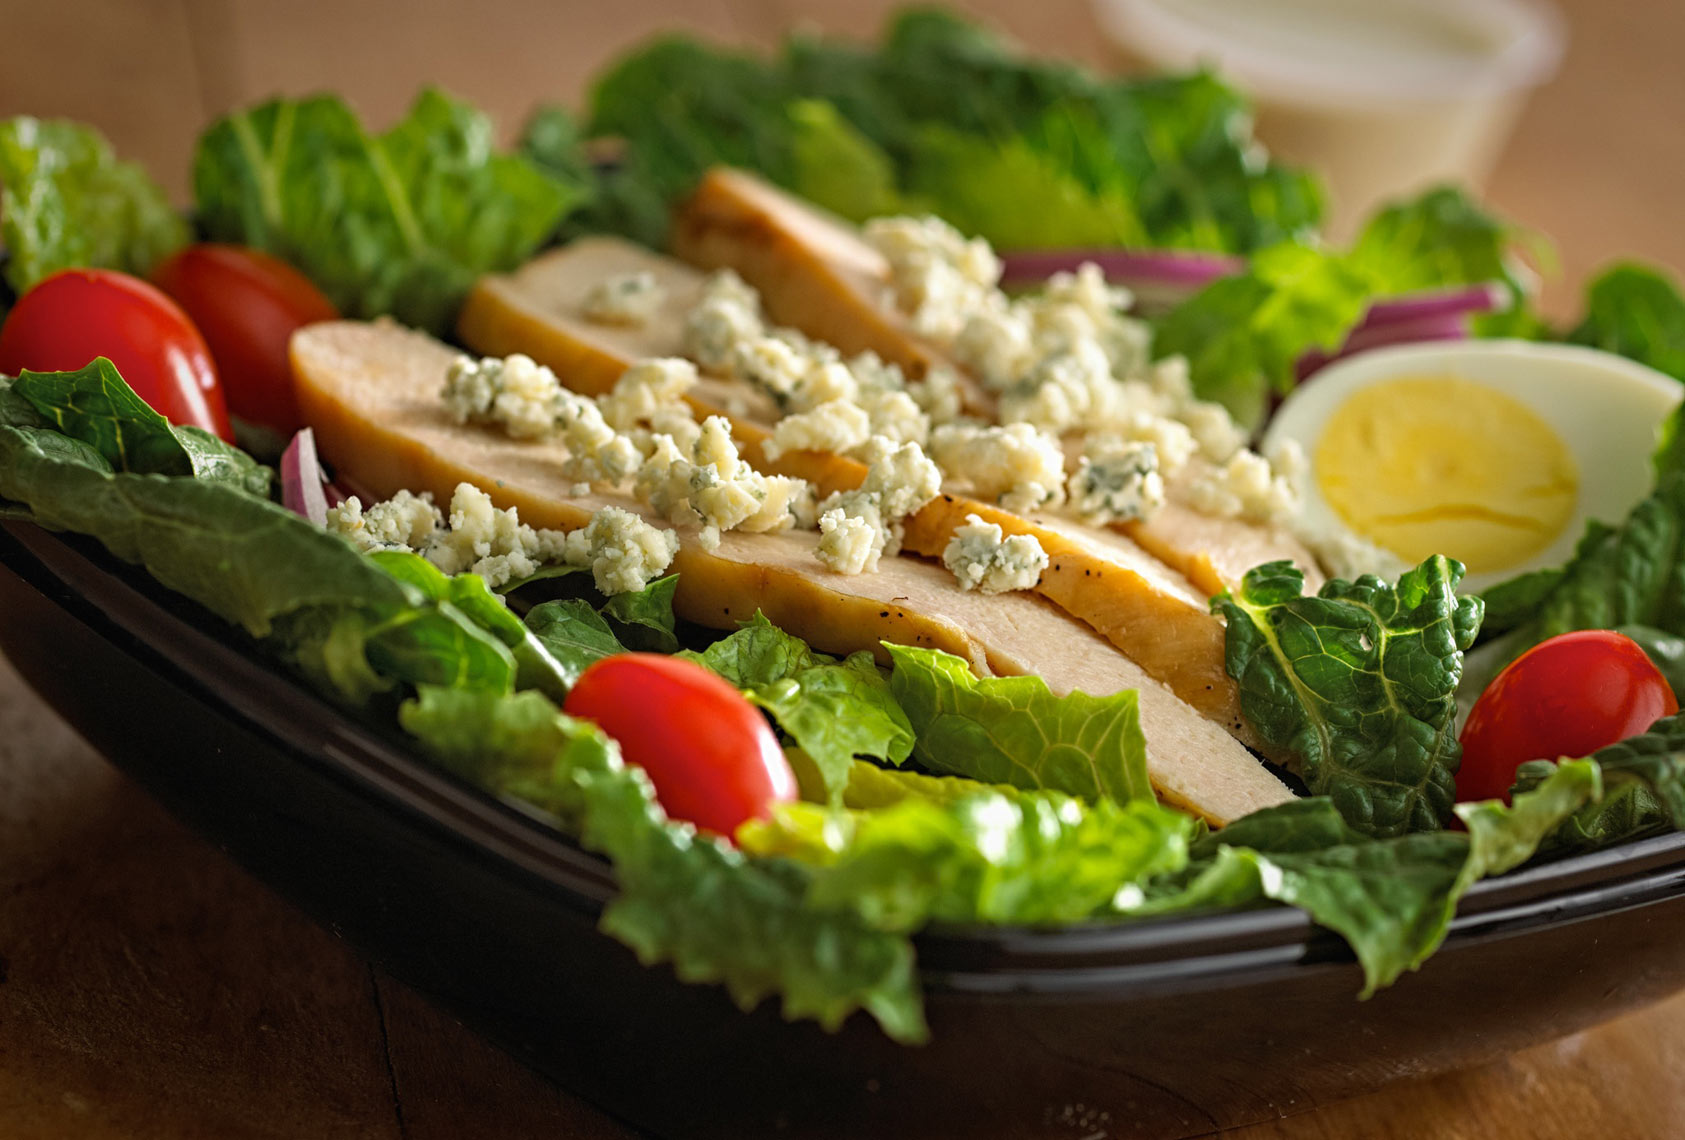 Chicken salad/blue cheese crumbles/egg/onions/food photography